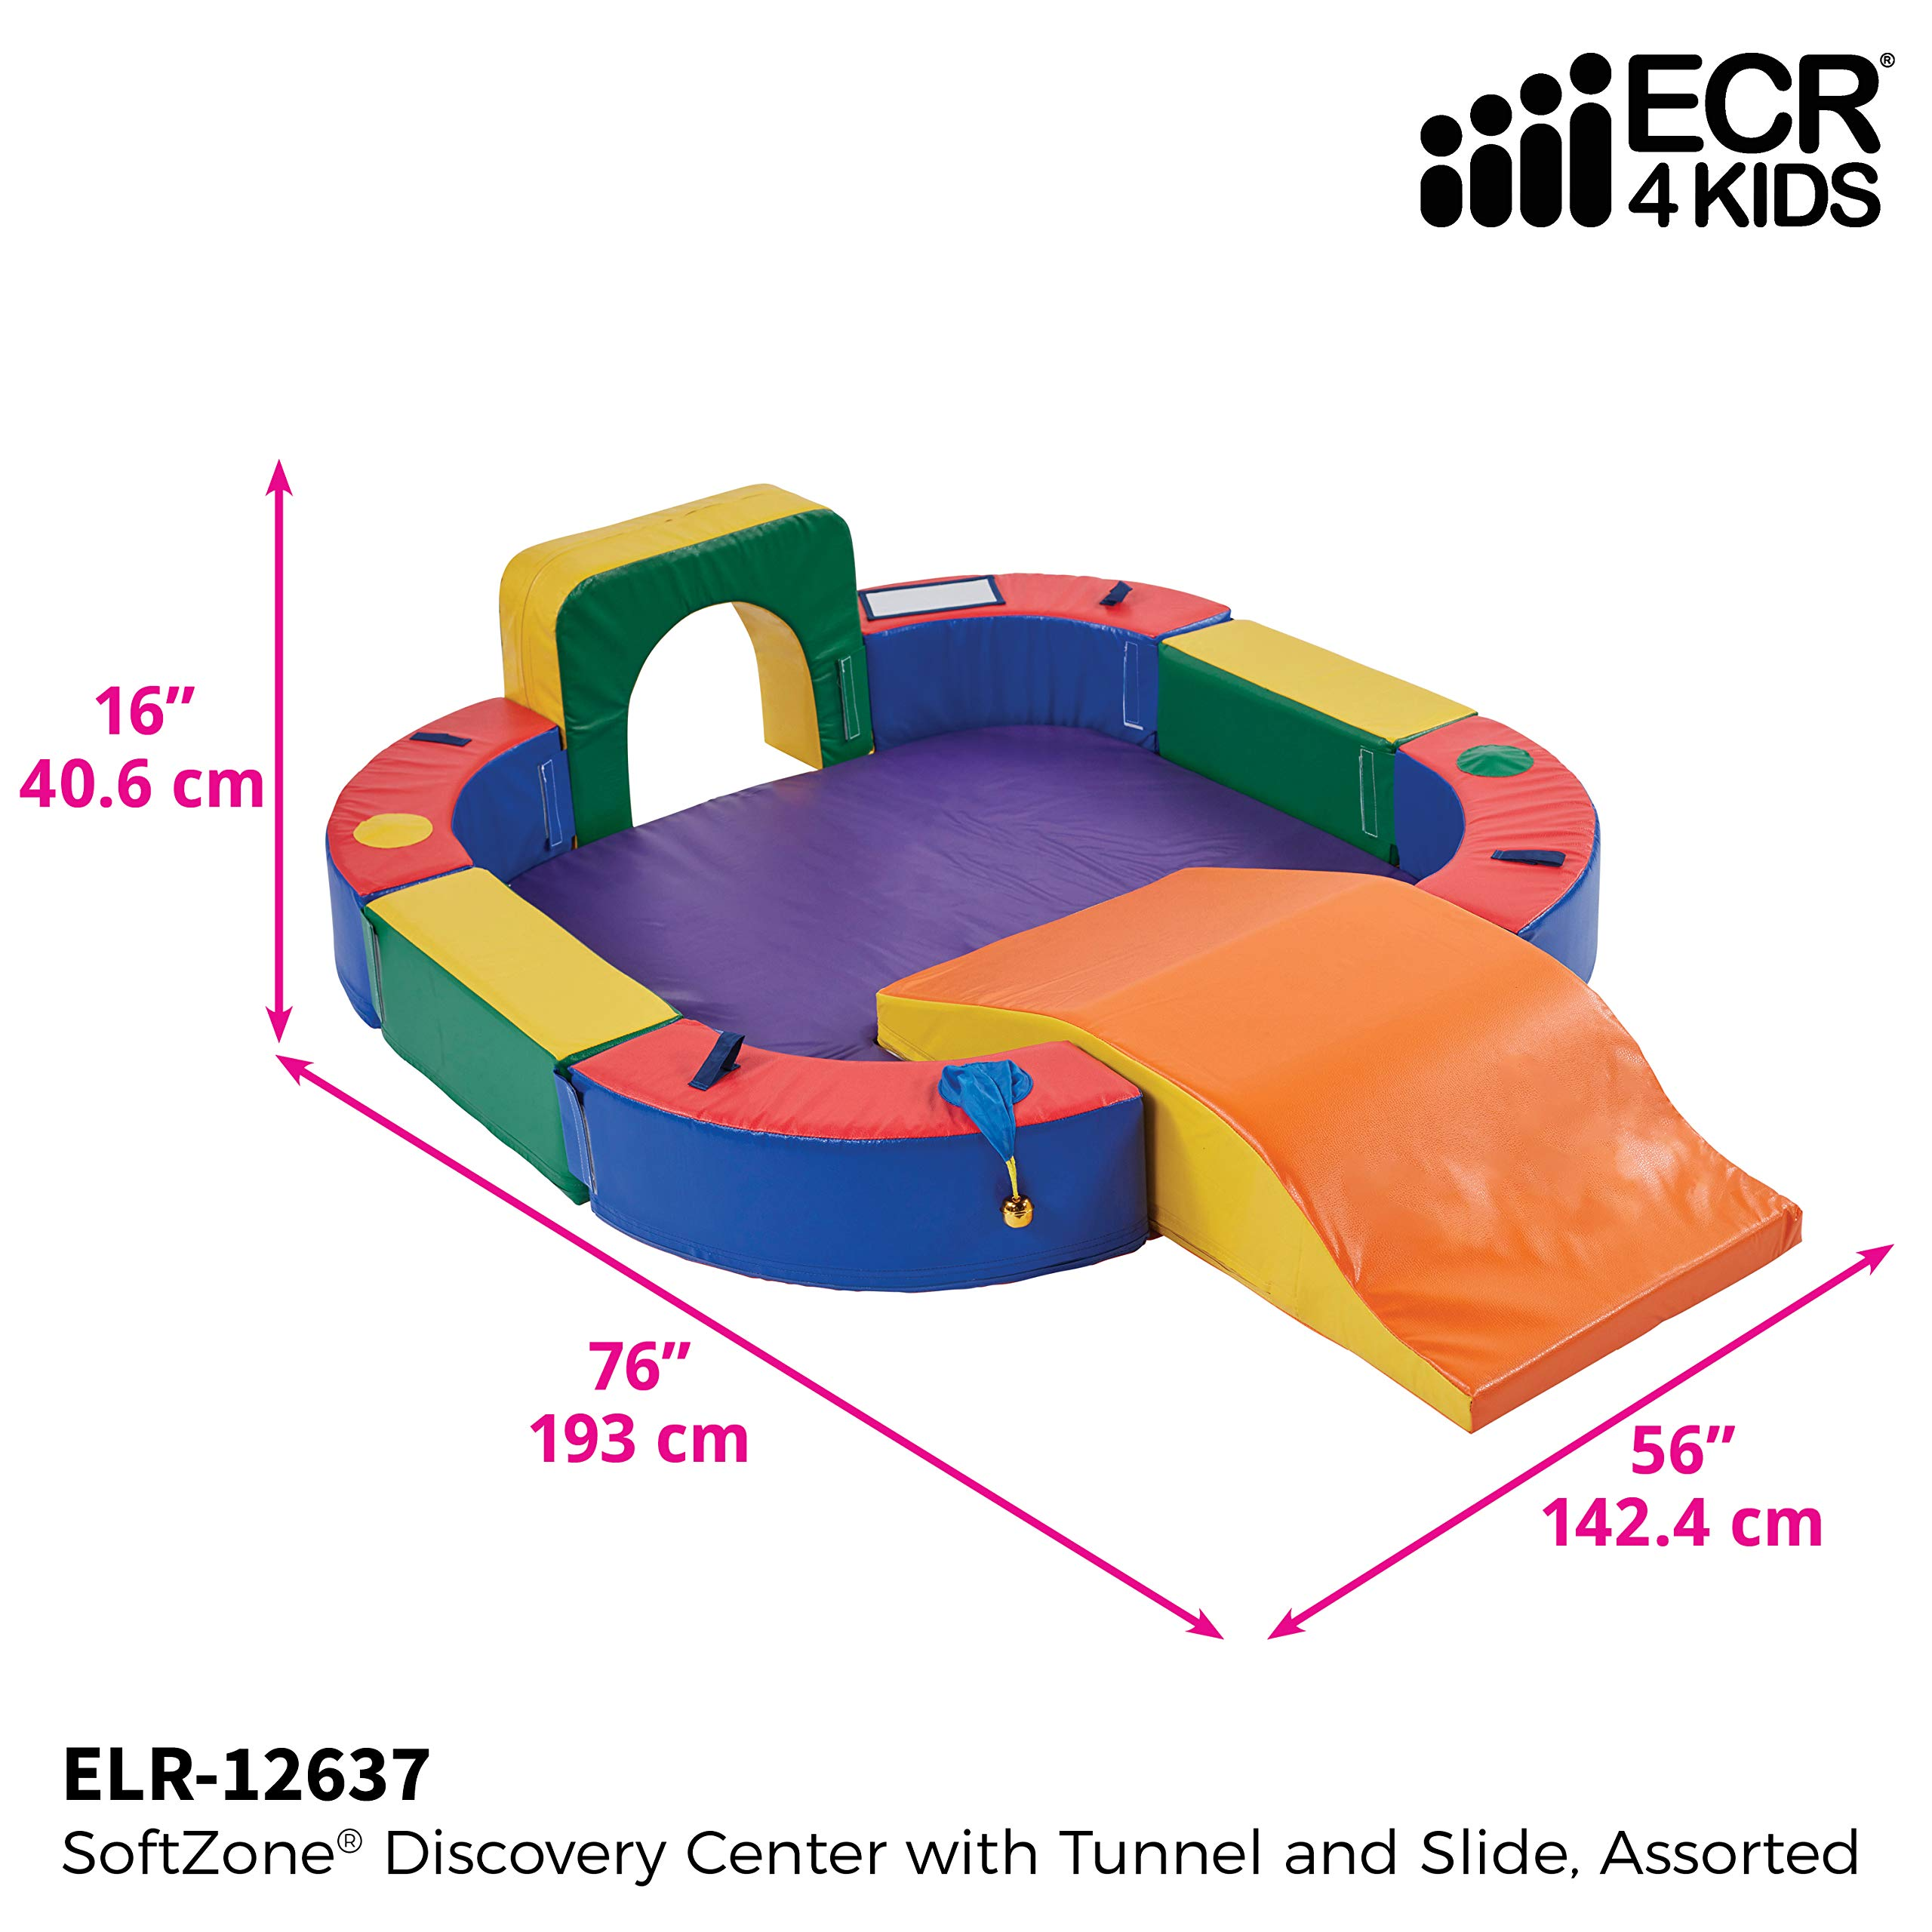 ECR4Kids SoftZone Discovery Center with Tunnel and Slide Playset, Assorted by ECR4Kids (Image #2)